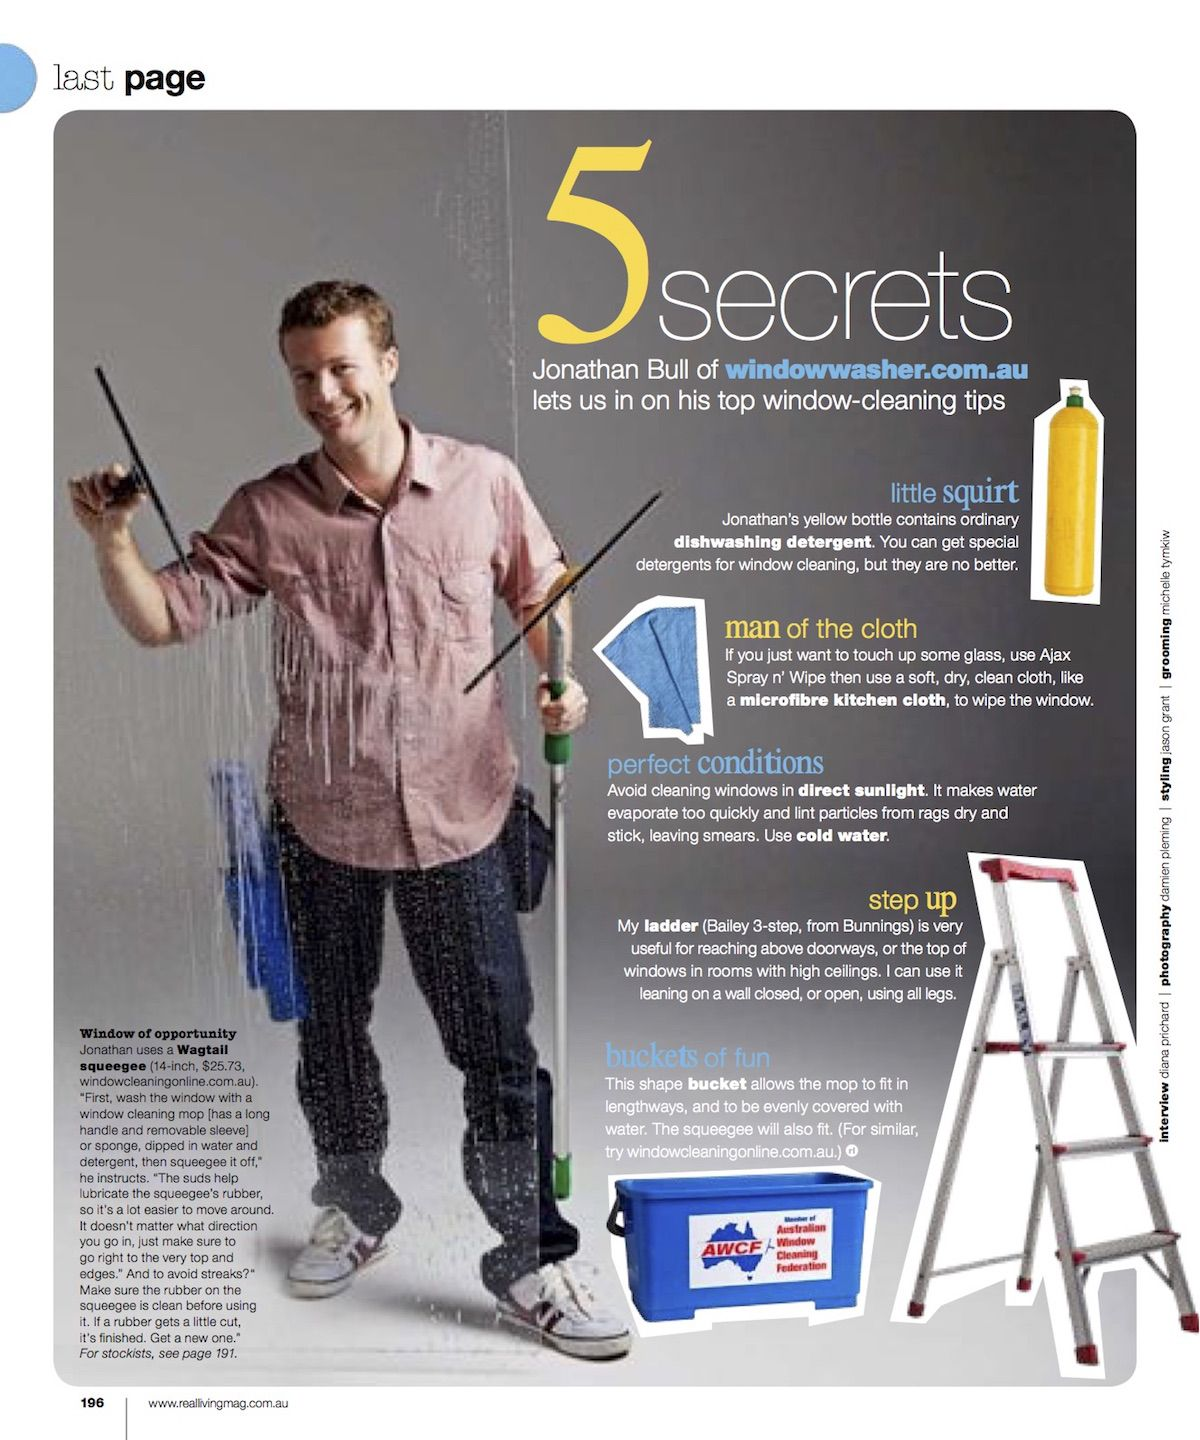 Window cleaning tips article from Real Living